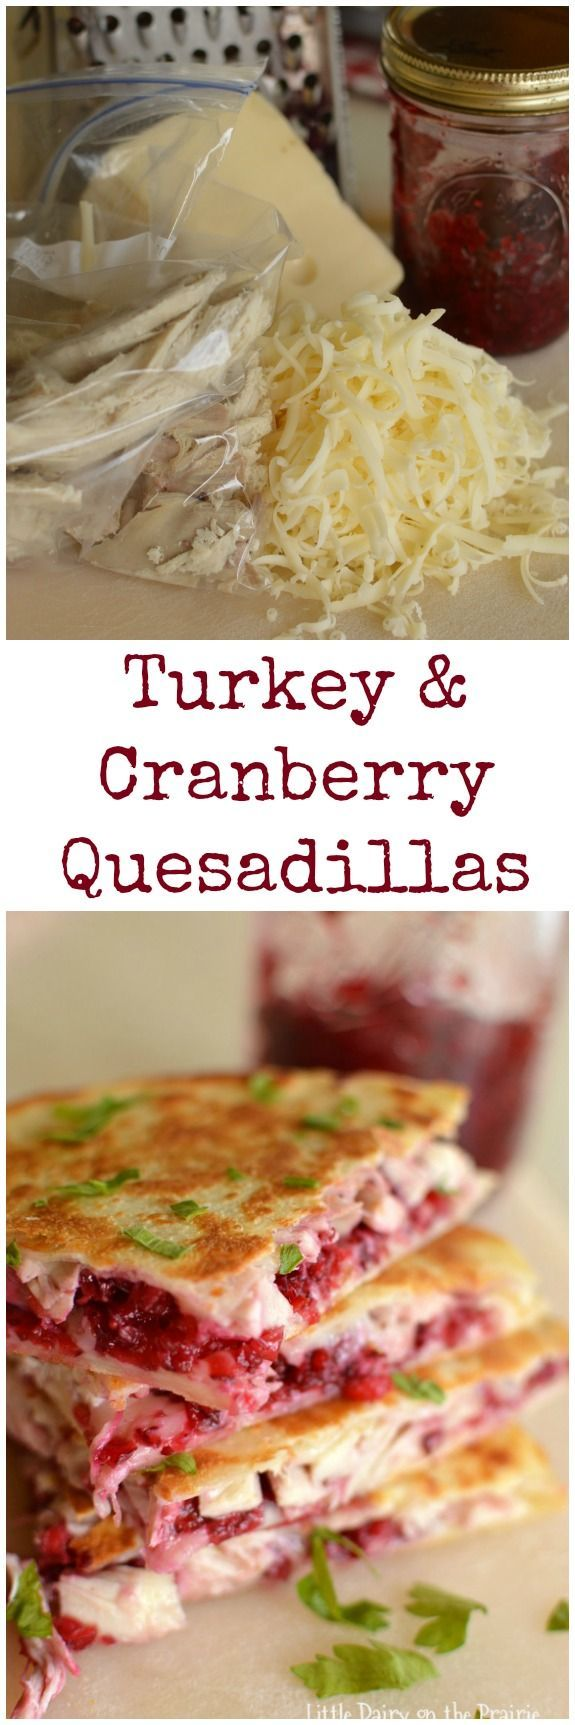 Turkey and Cranberry Quesadillas for all those Thanksgiving leftovers.